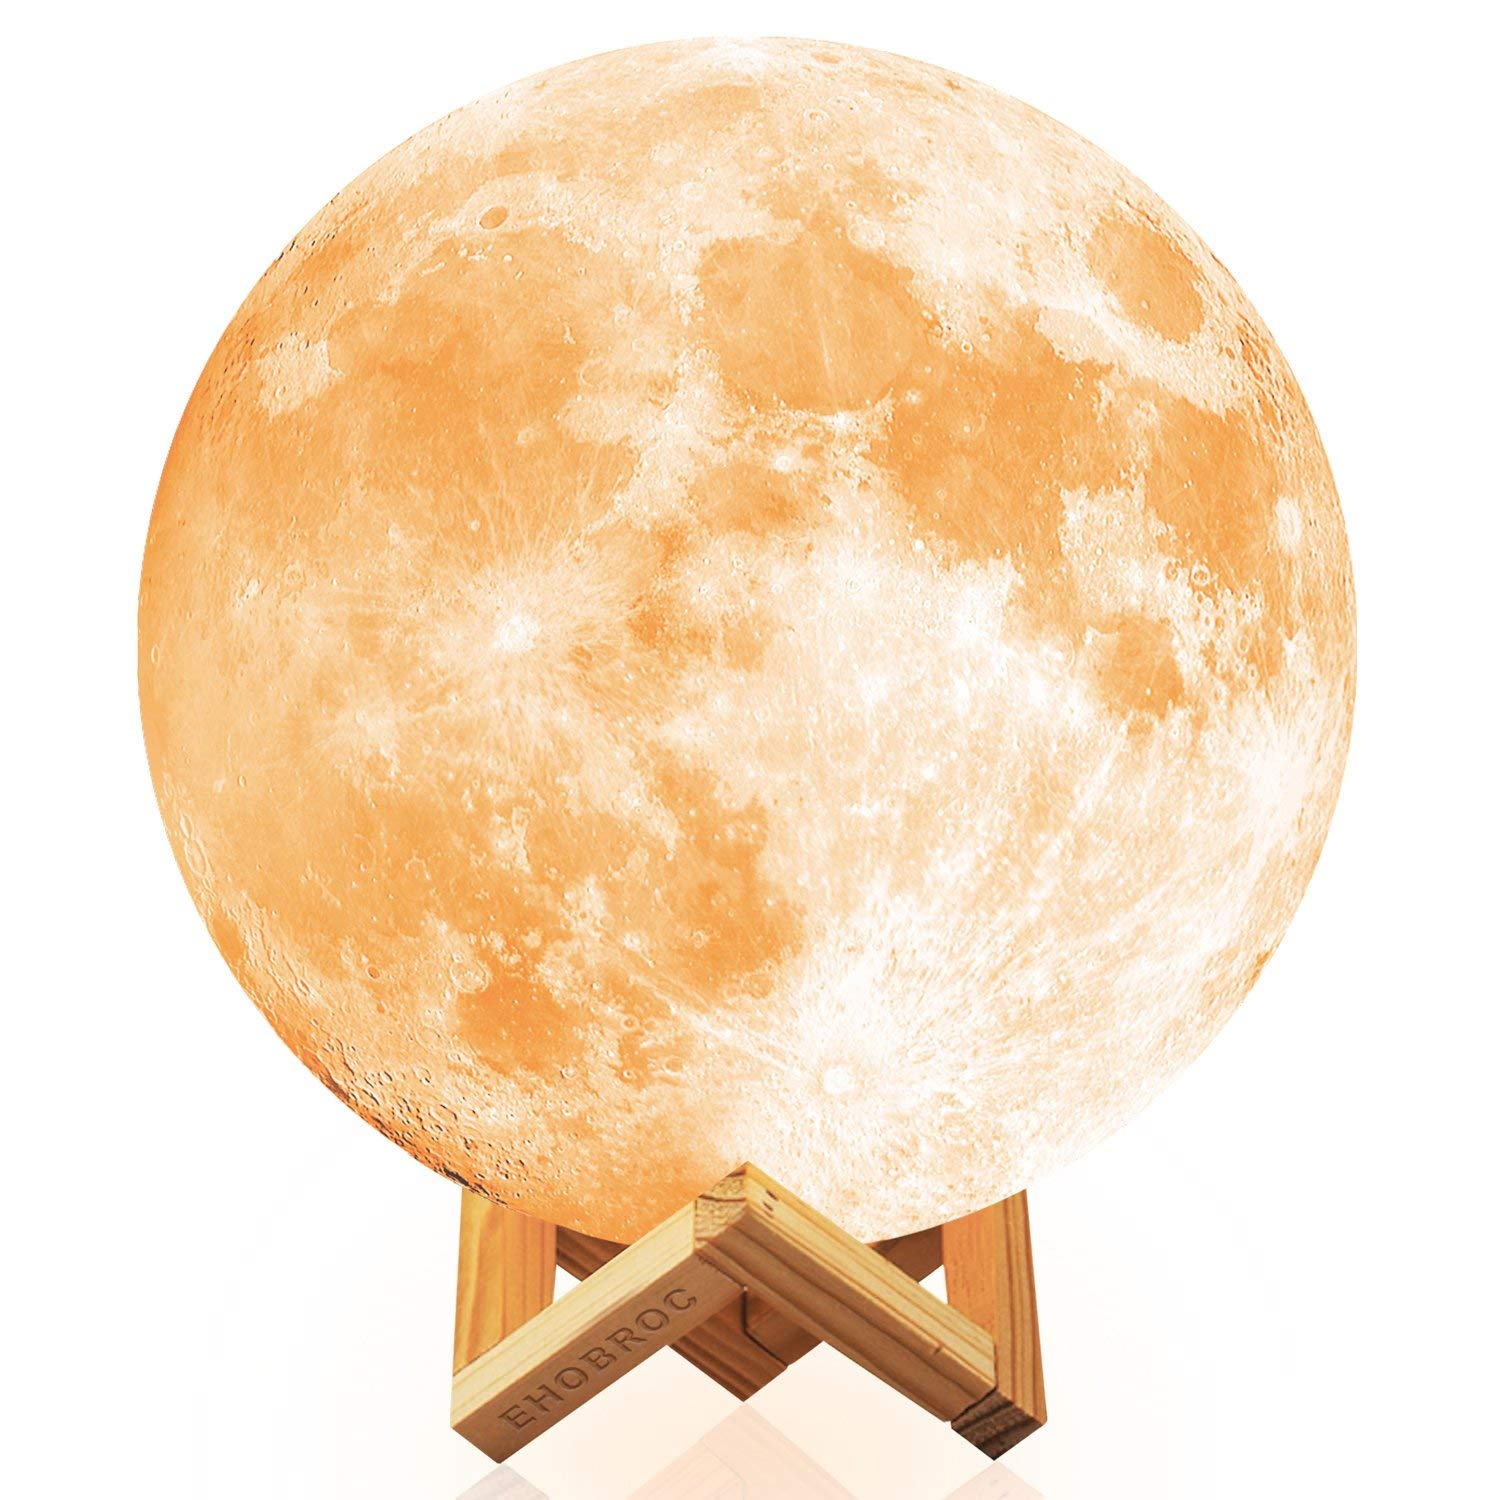 Moon Light, Ehobroc 7.1 inch Glowing Moon Globe Light, 3D Glowing Moon Lamp With Stand, Luna Moon Lamp with 2 Colors(Warm White&Yellow), Moon Night Light for Home Decor, Bedroom, Children Gifts